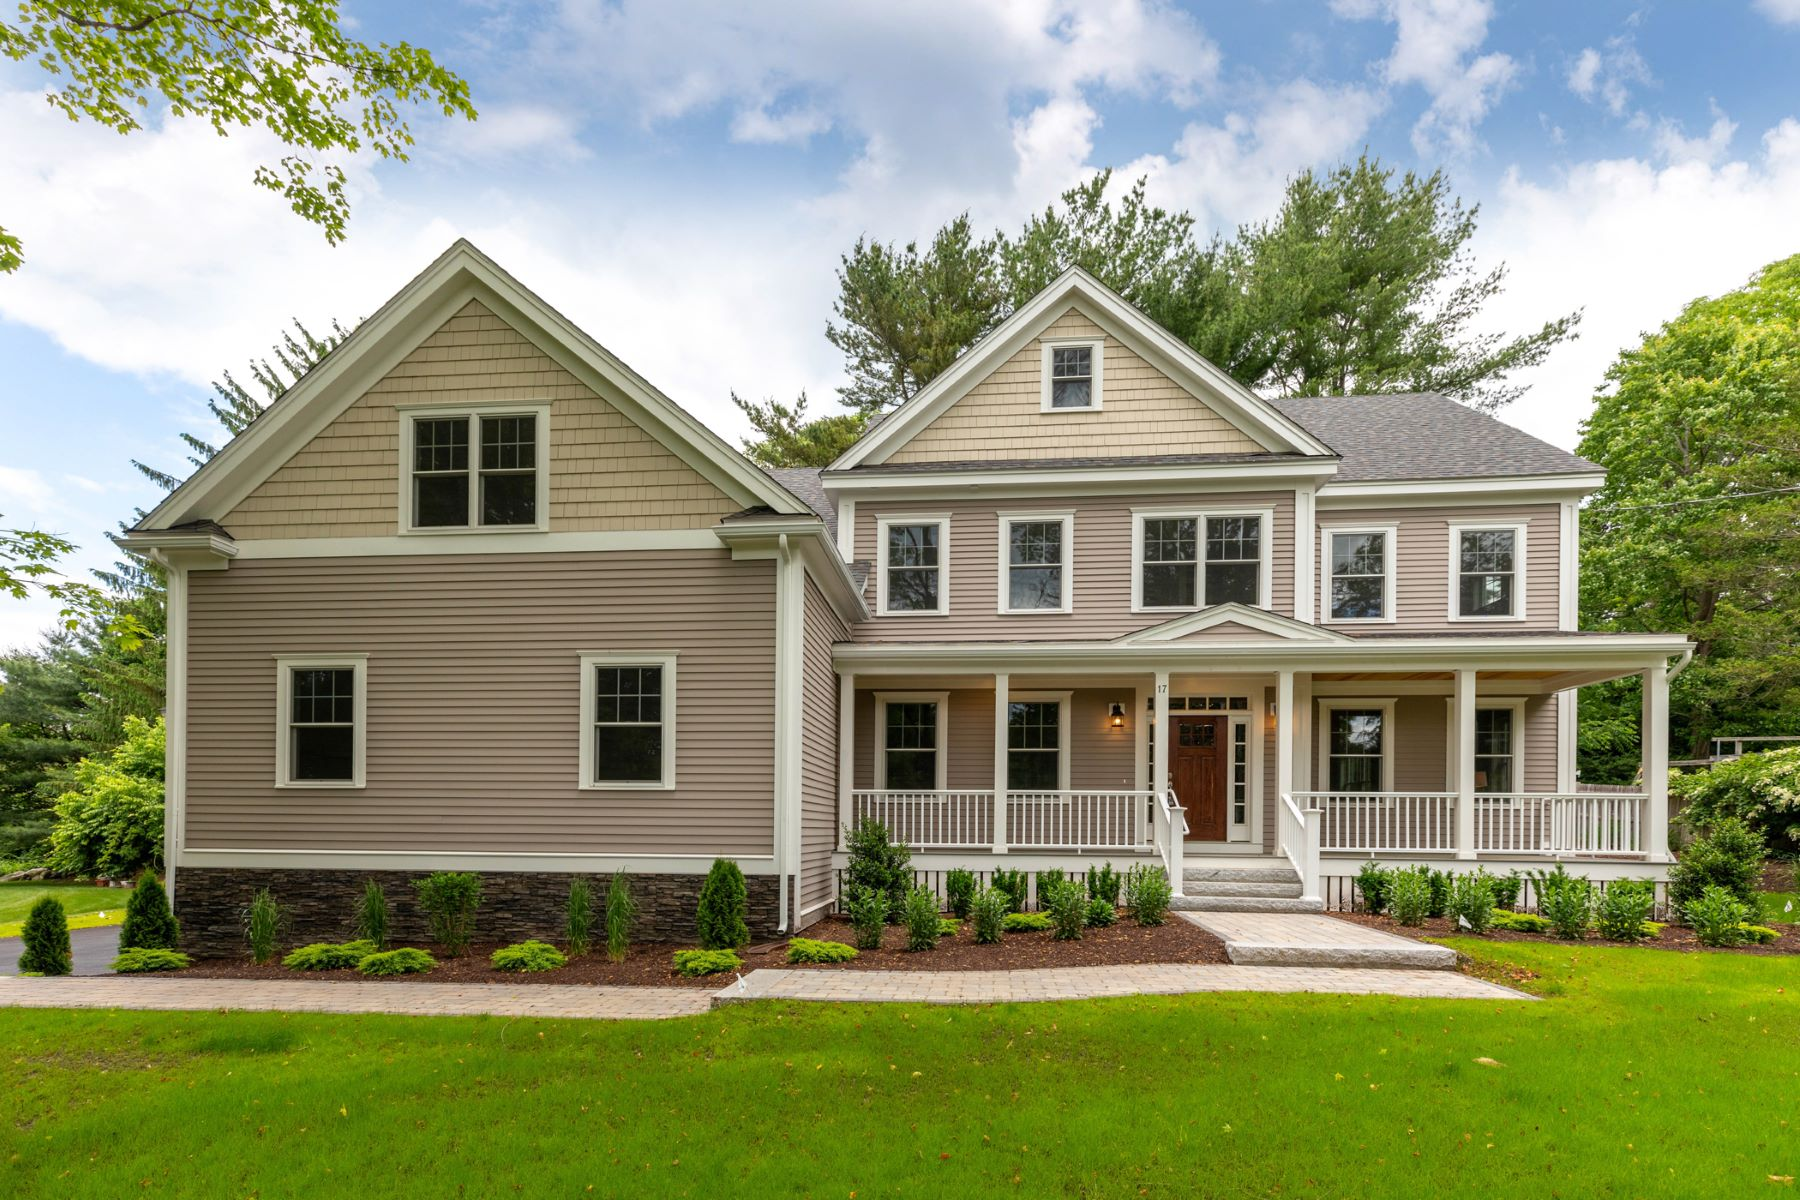 Single Family Homes for Sale at 17 Minute Man Lane, Lexington 17 Minute Man Ln Lexington, Massachusetts 02421 United States